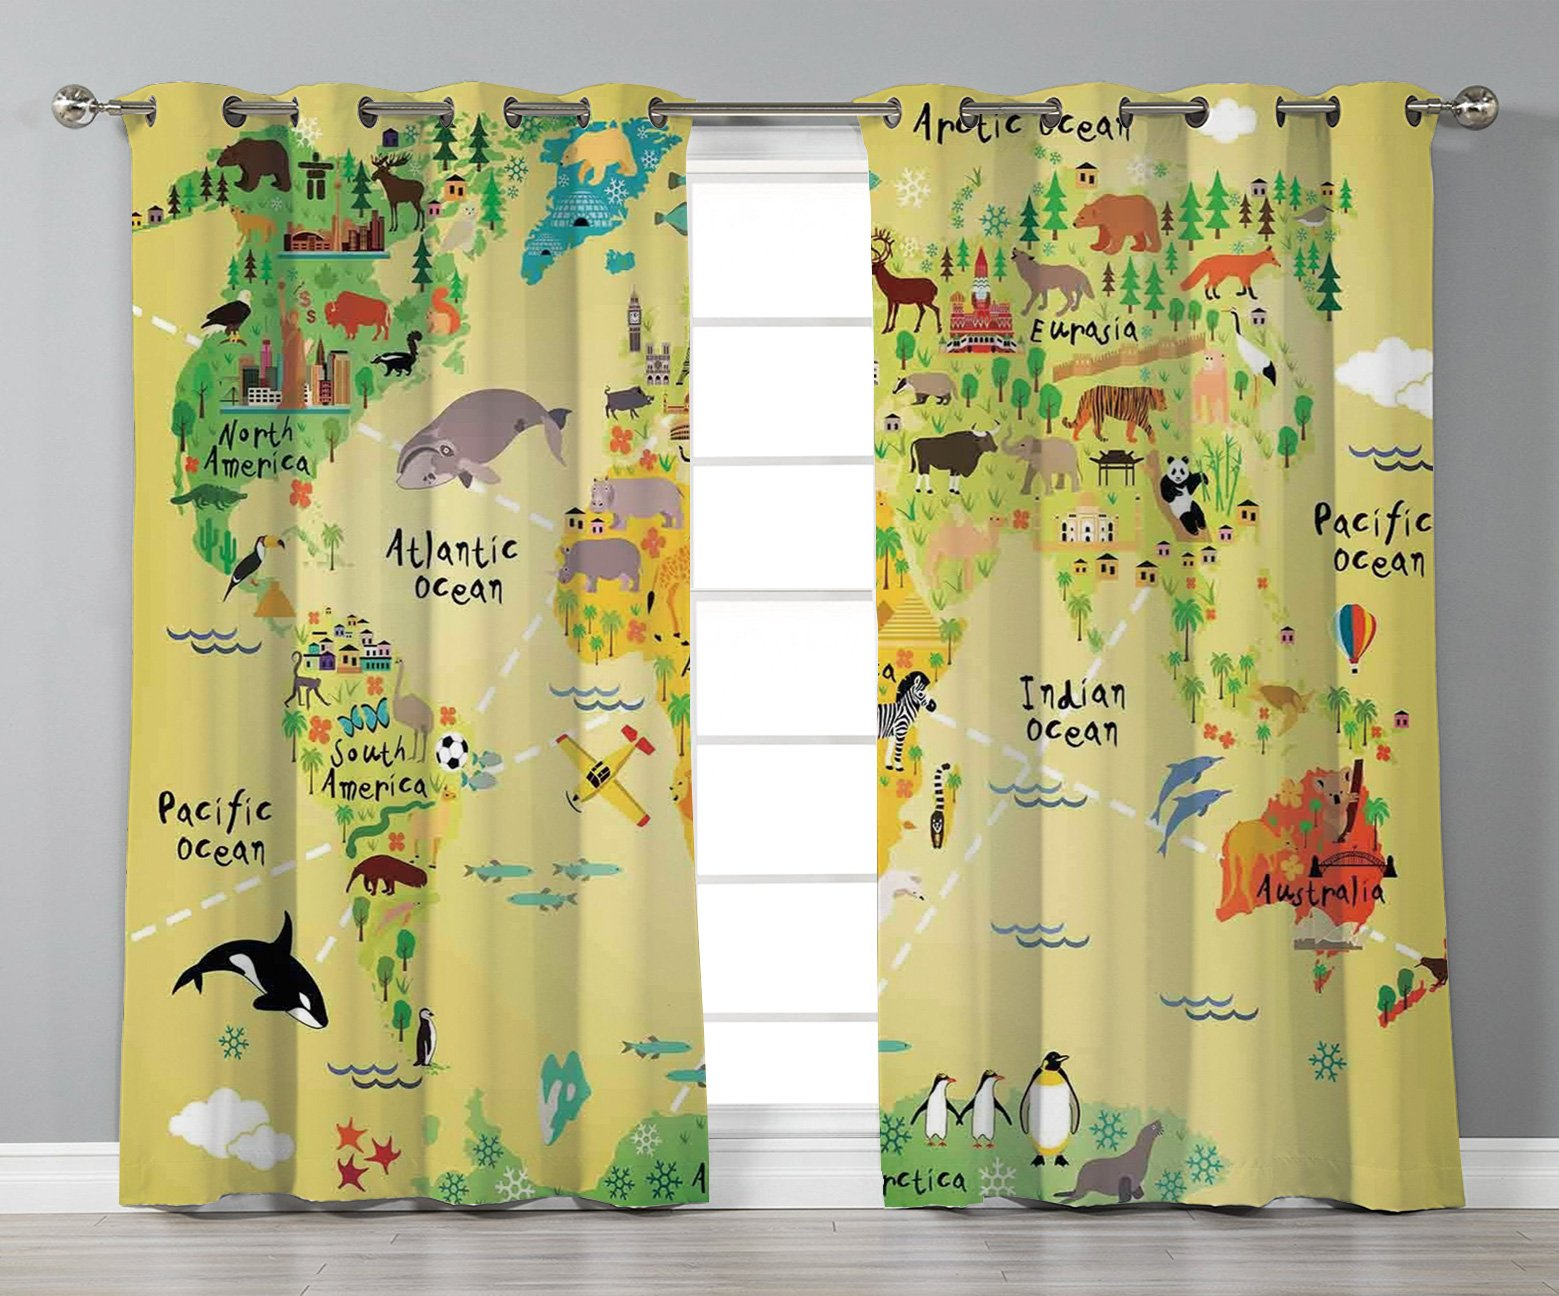 Thermal Insulated Blackout Grommet Window Curtains,Kids Decor,Educational World Map Africa America Penguins Atlantic Pacific Ocean Animals Australia Panda Decorative,2 Panel Set Window Drapes,for Liv